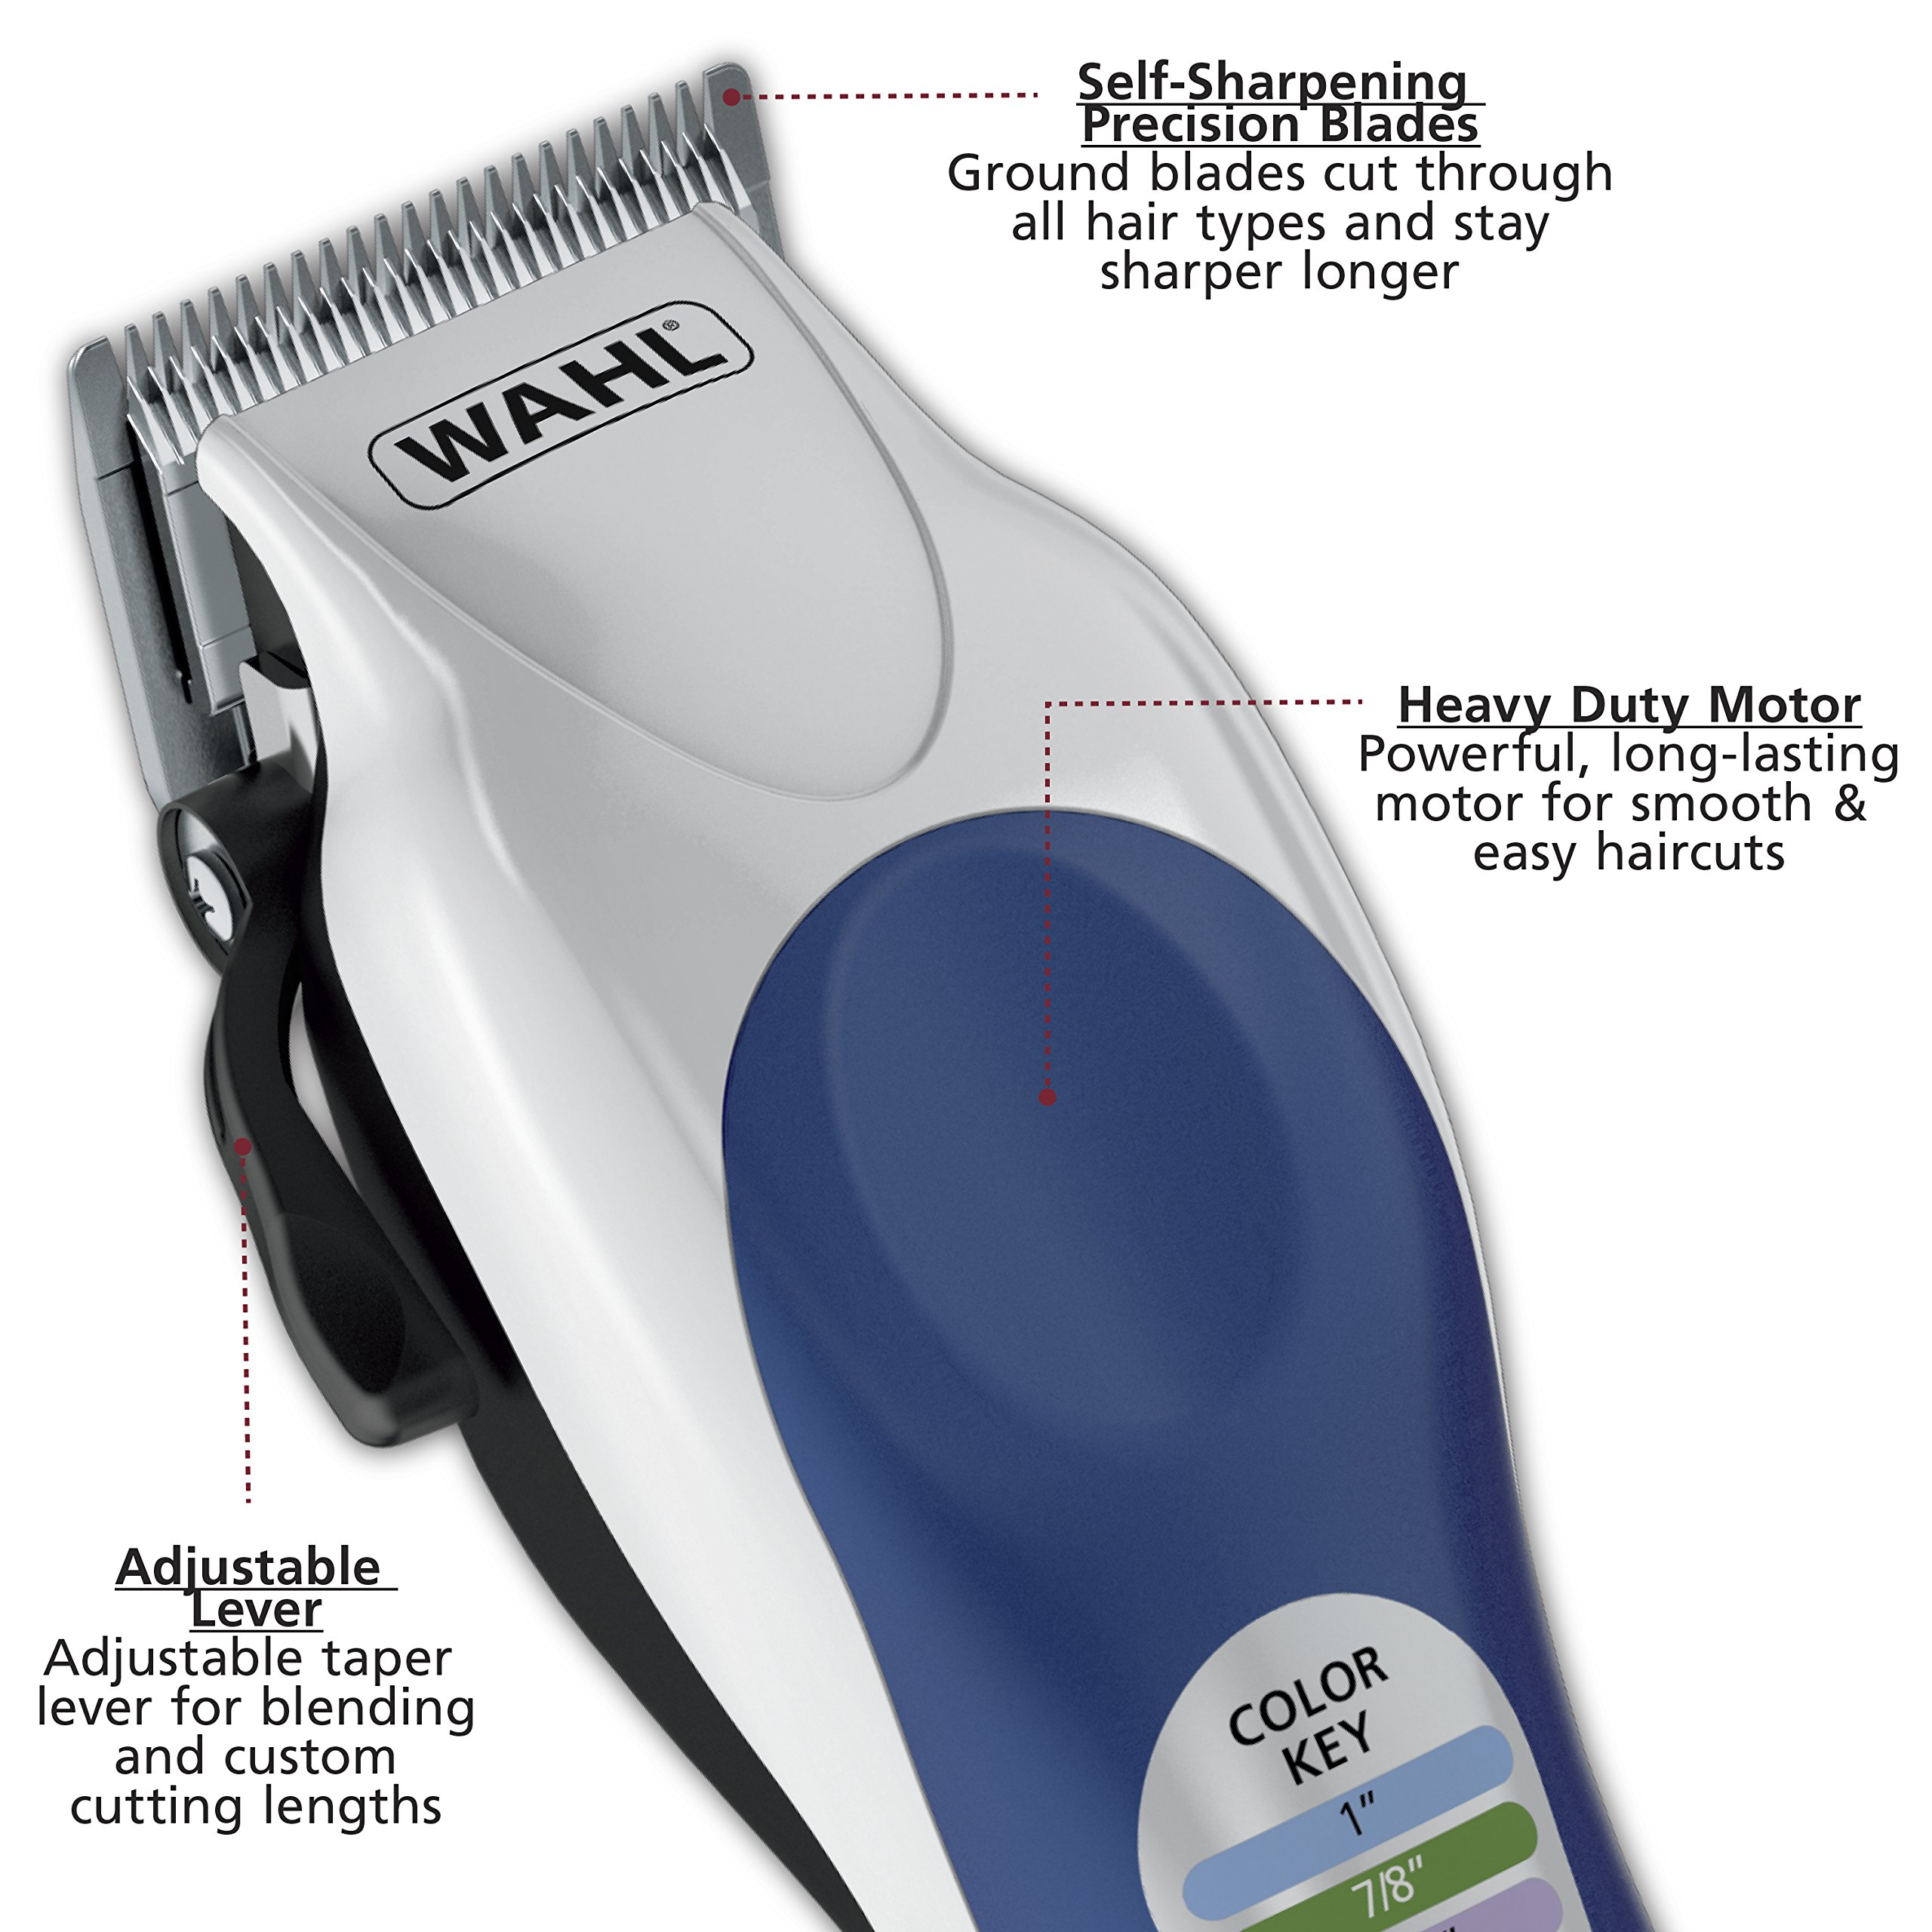 Wahl Color Pro Complete Hair Cutting Kit, #79300-400T by WAHL (Image #2)